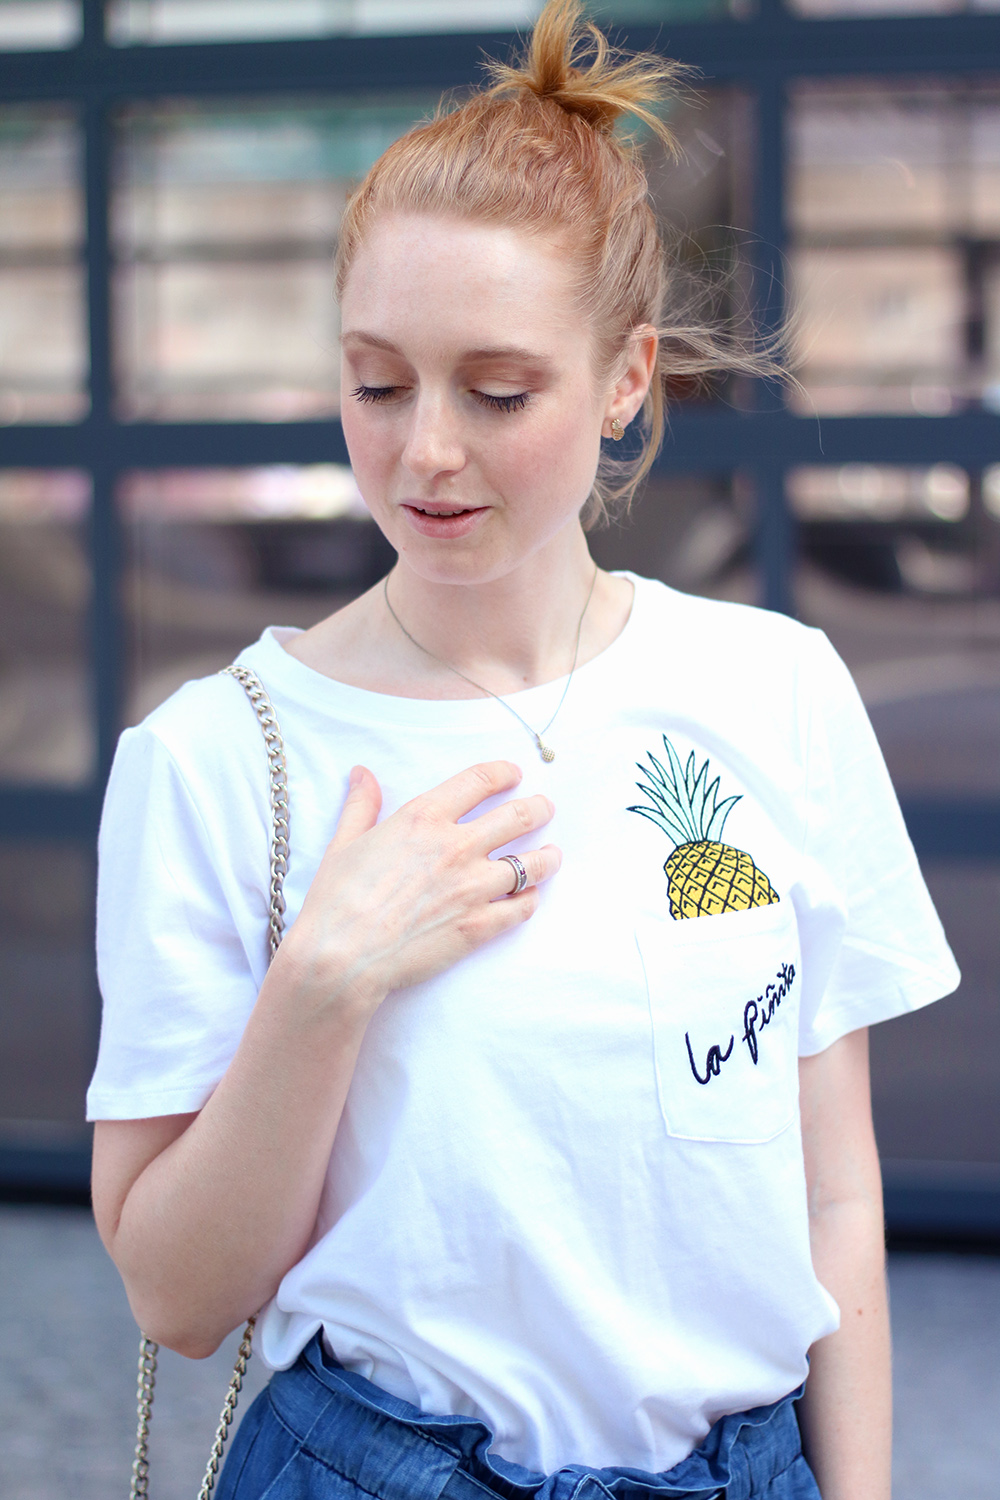 Pineapple Shirt, White, Jeans Shorts, Pants, Summer Look, Outfit, Tips, Streetstyle, Fashion Tips, Find Your Style, Influencer, Germany, Berlin, Fashion Blog, Fashion Blog, Advance Your Style, advanceyourstyle